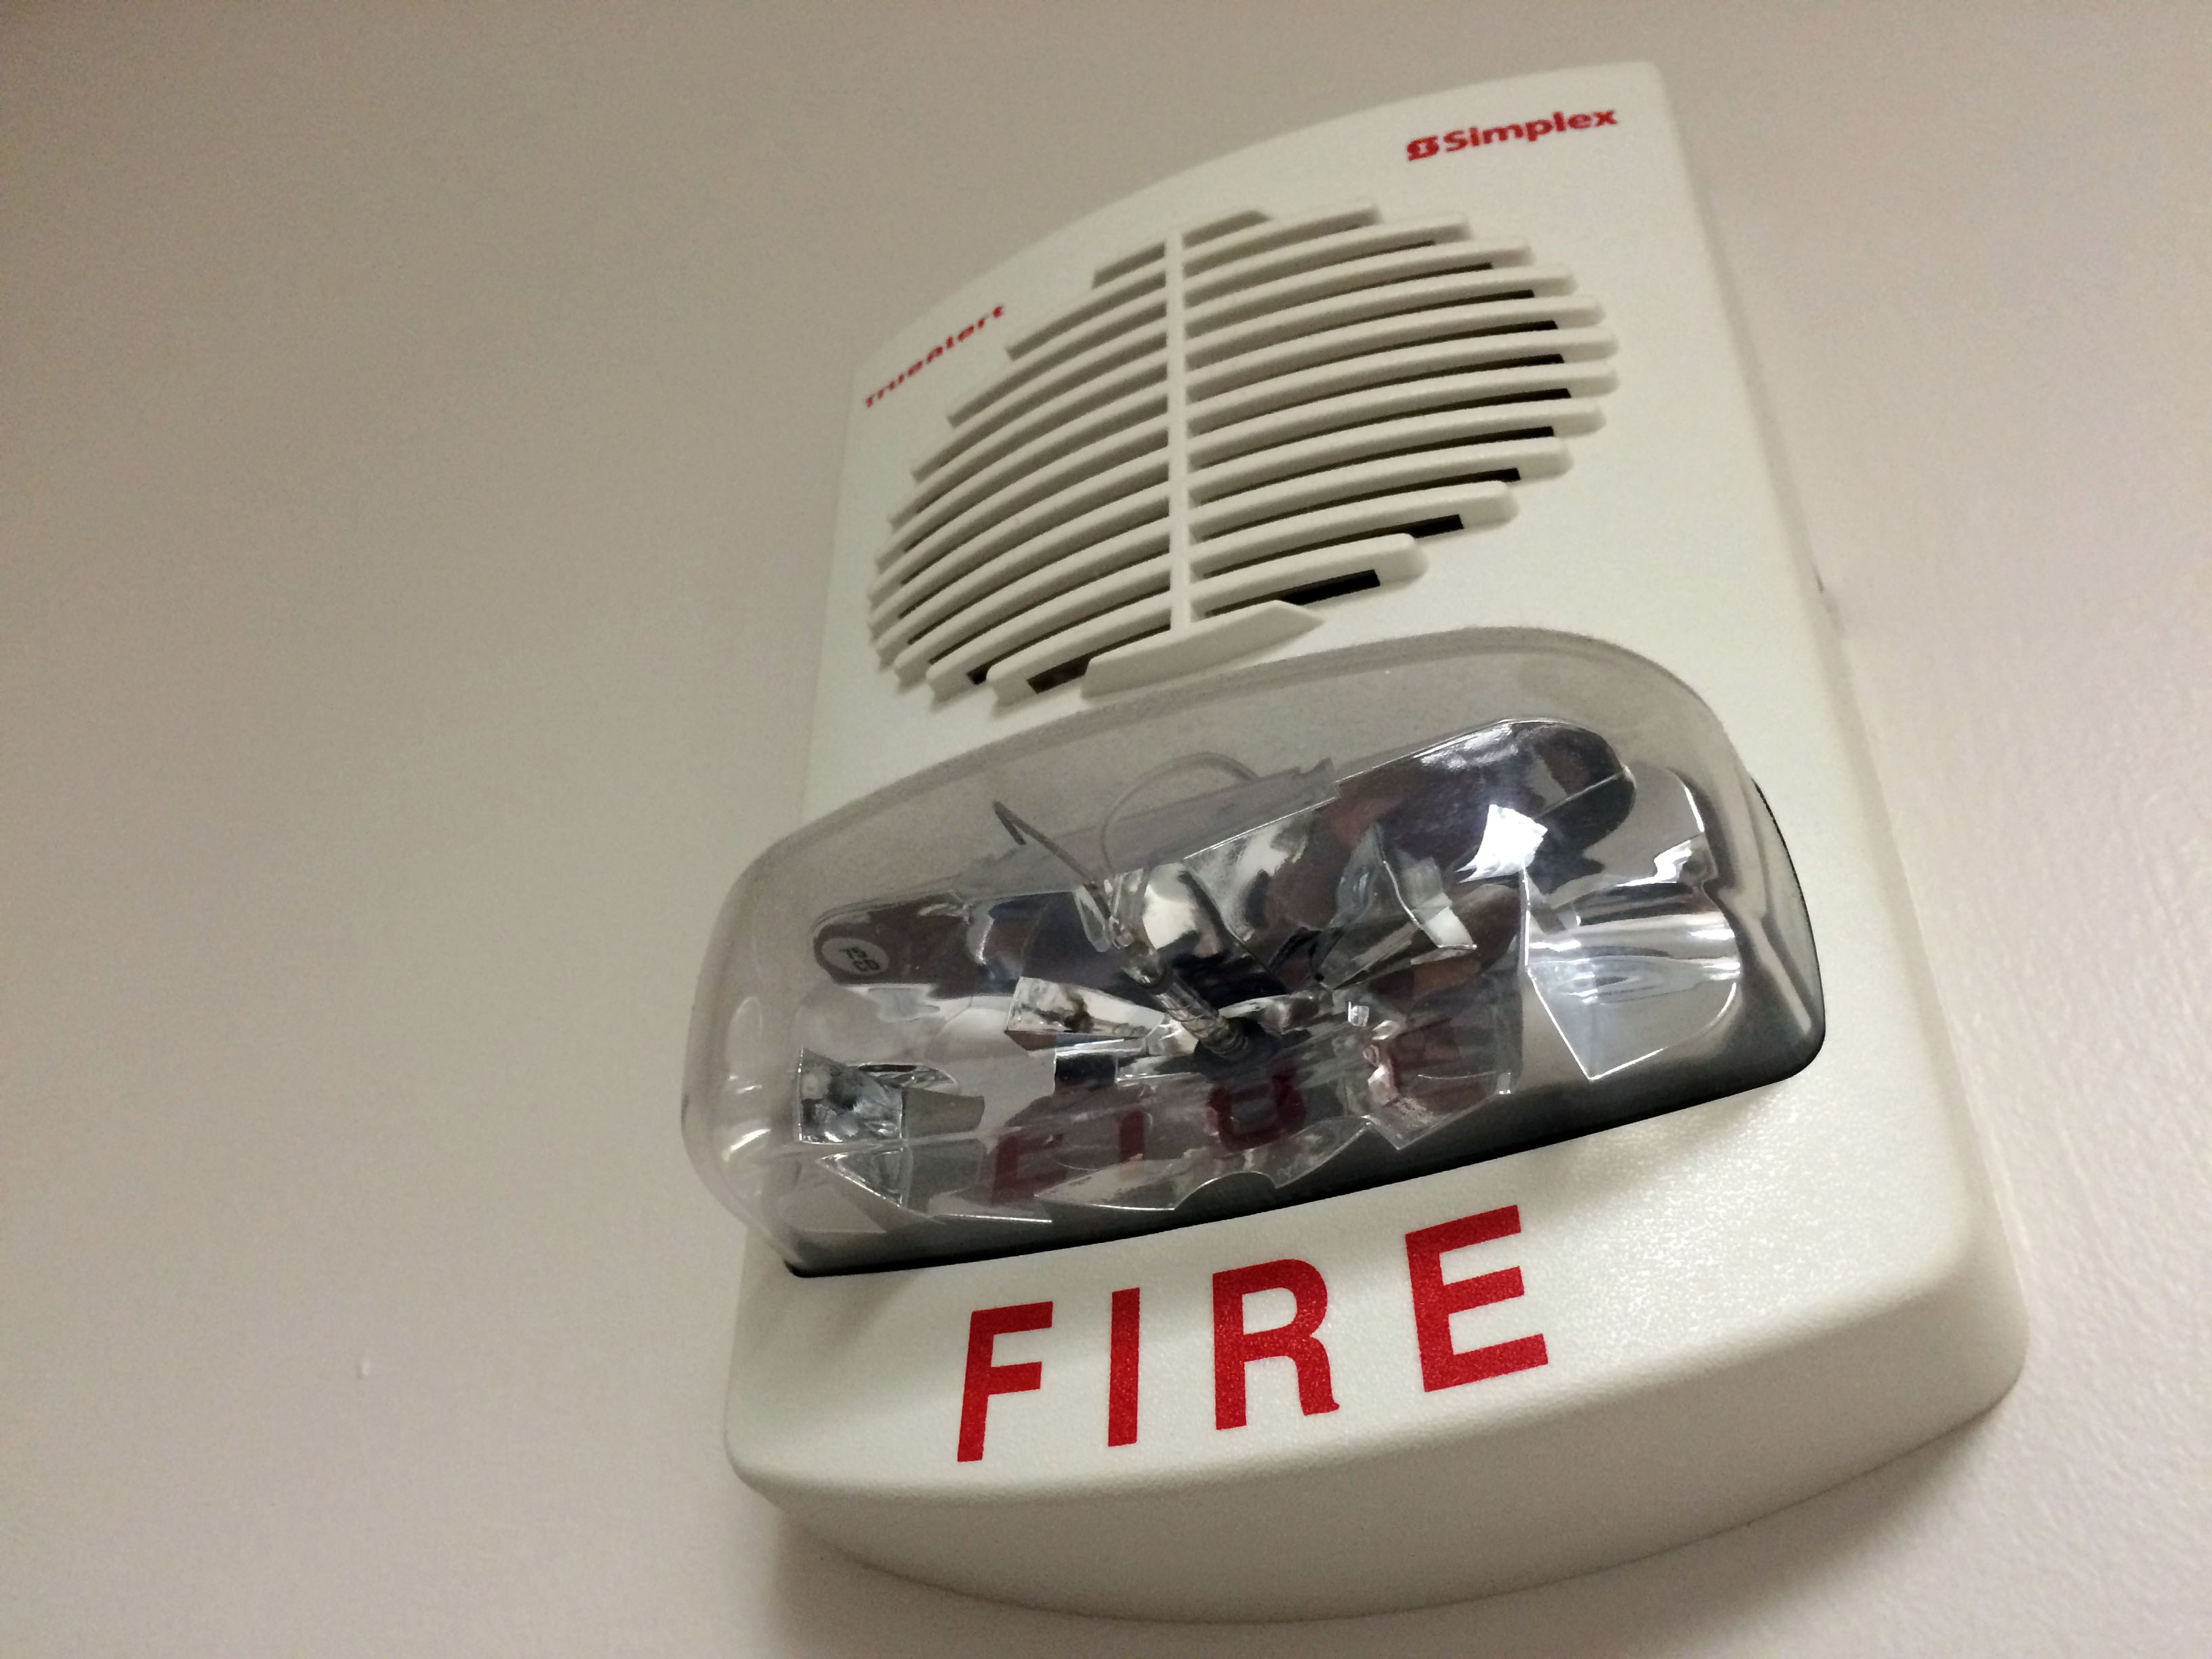 A fire alarm with strobe light